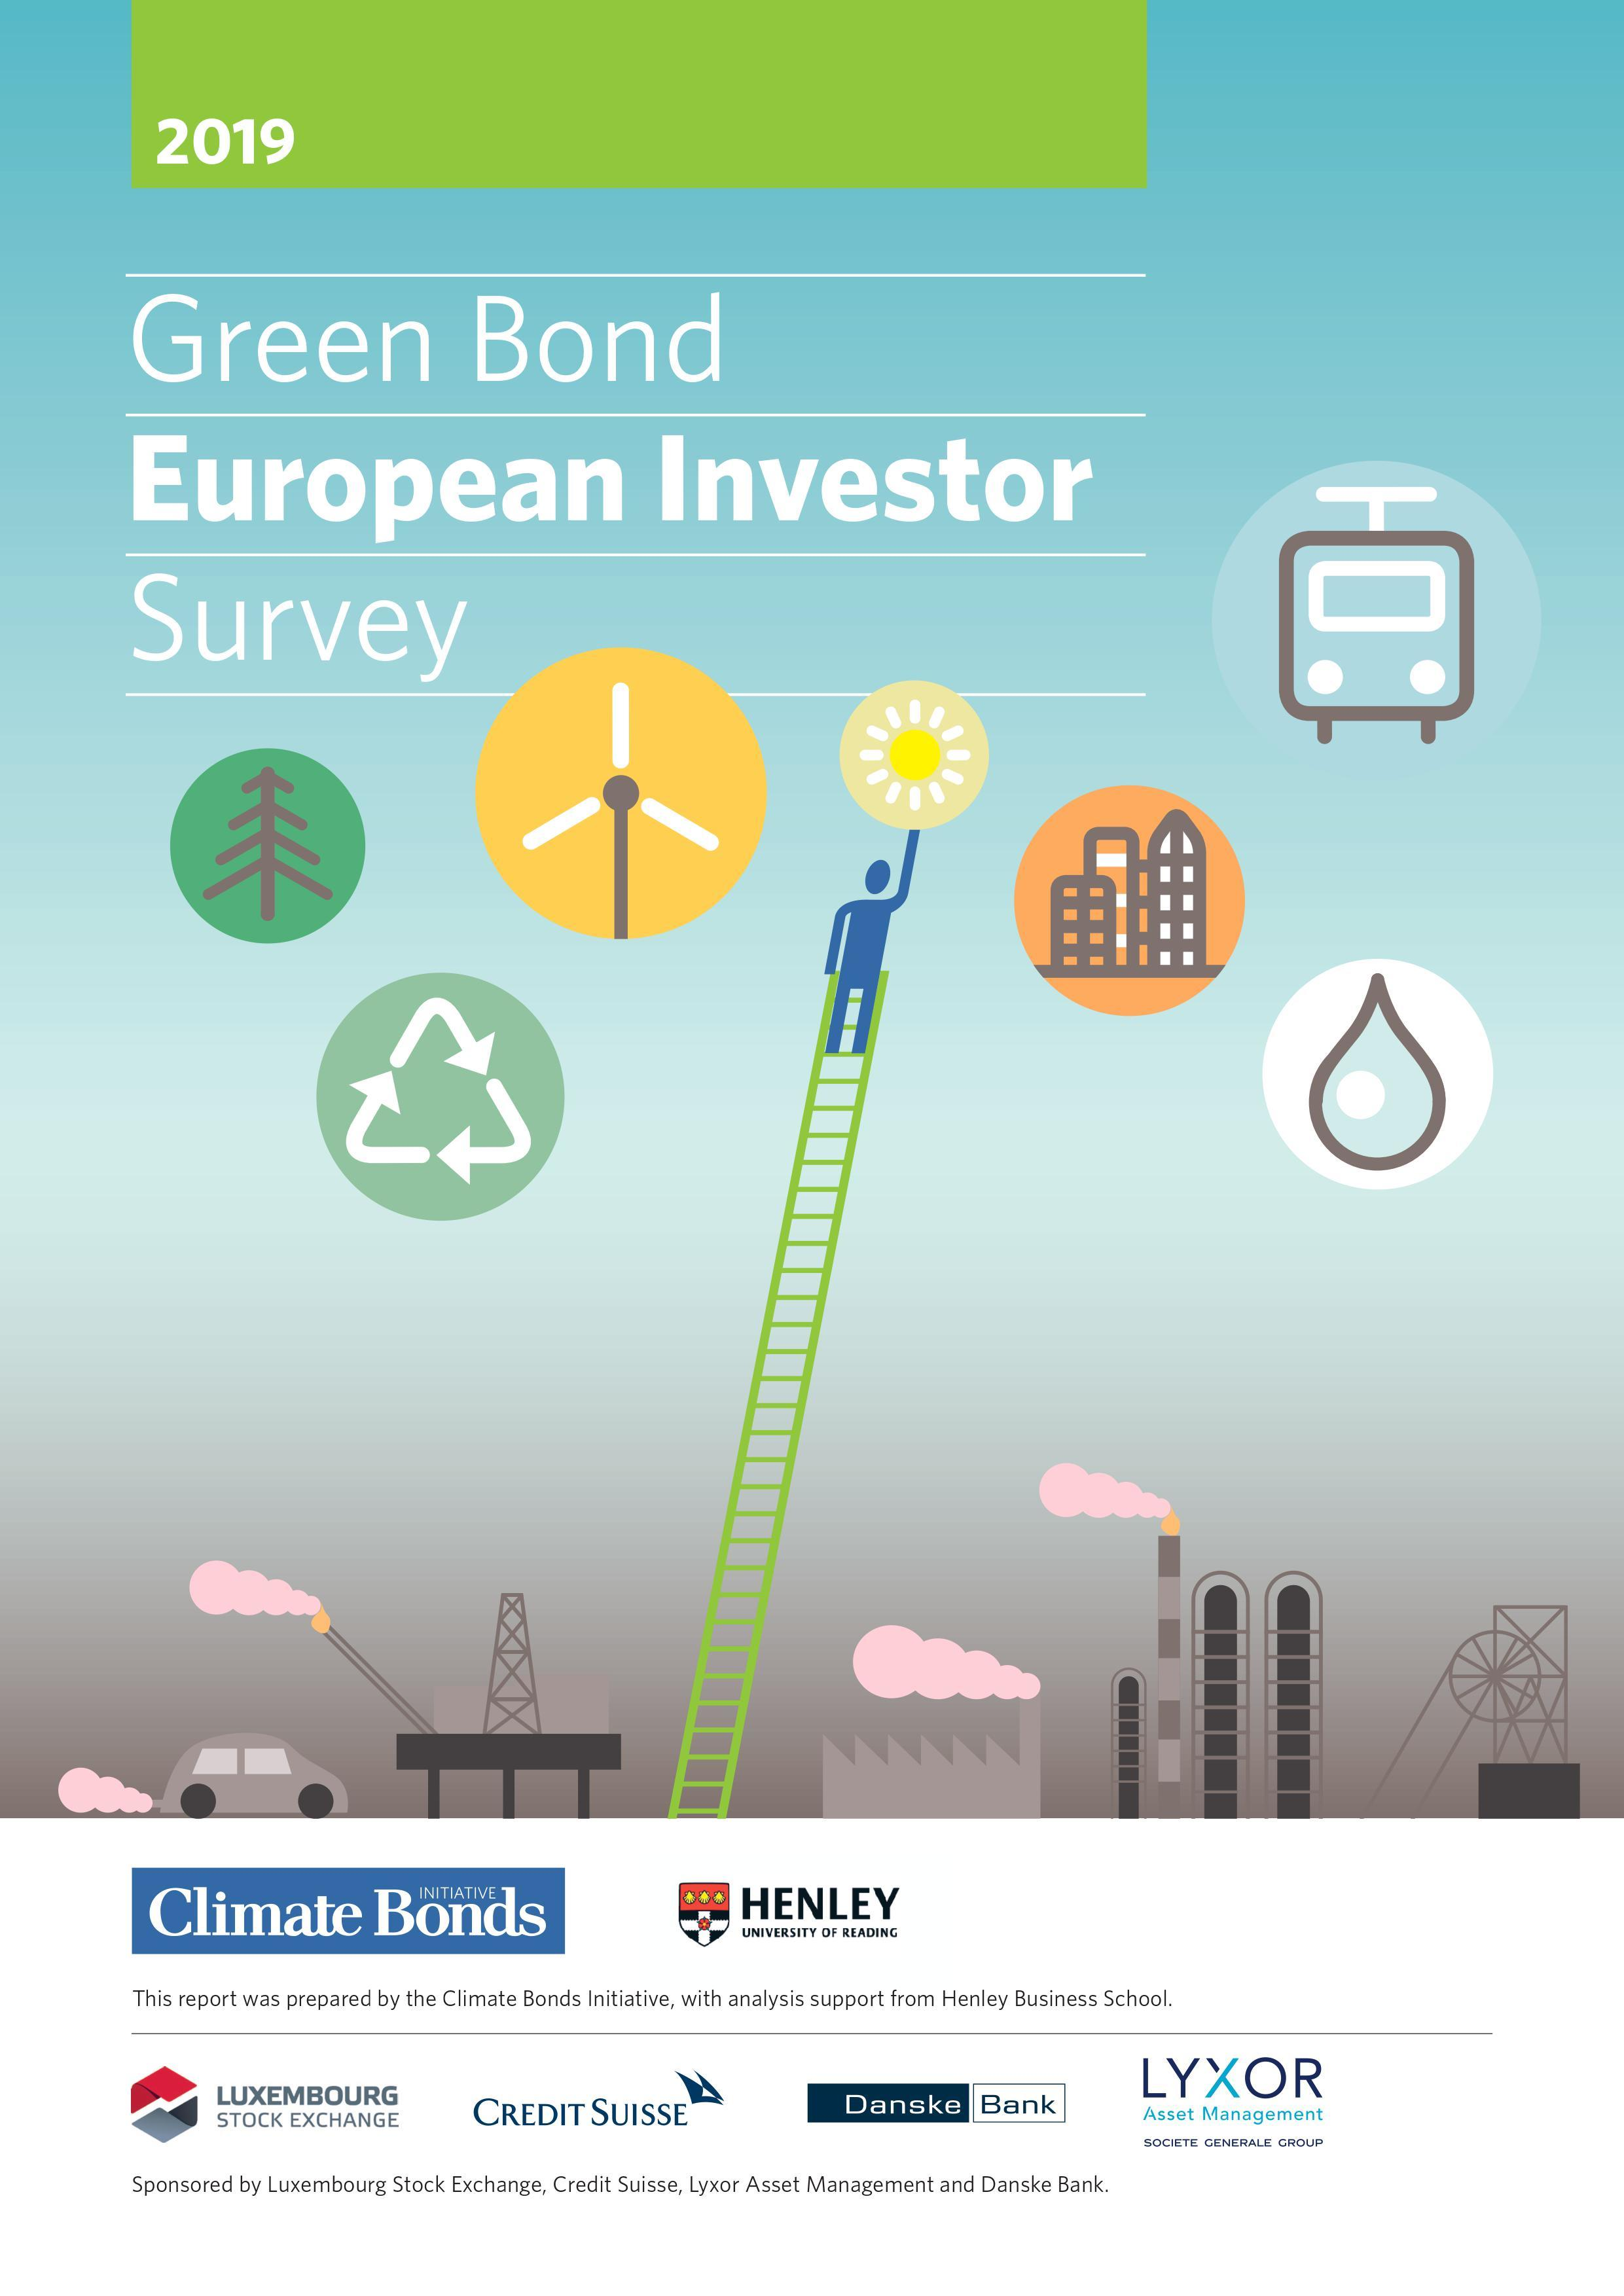 Henley academics collaborate with Climate Bonds Initiative on first Green Bond Investor Survey